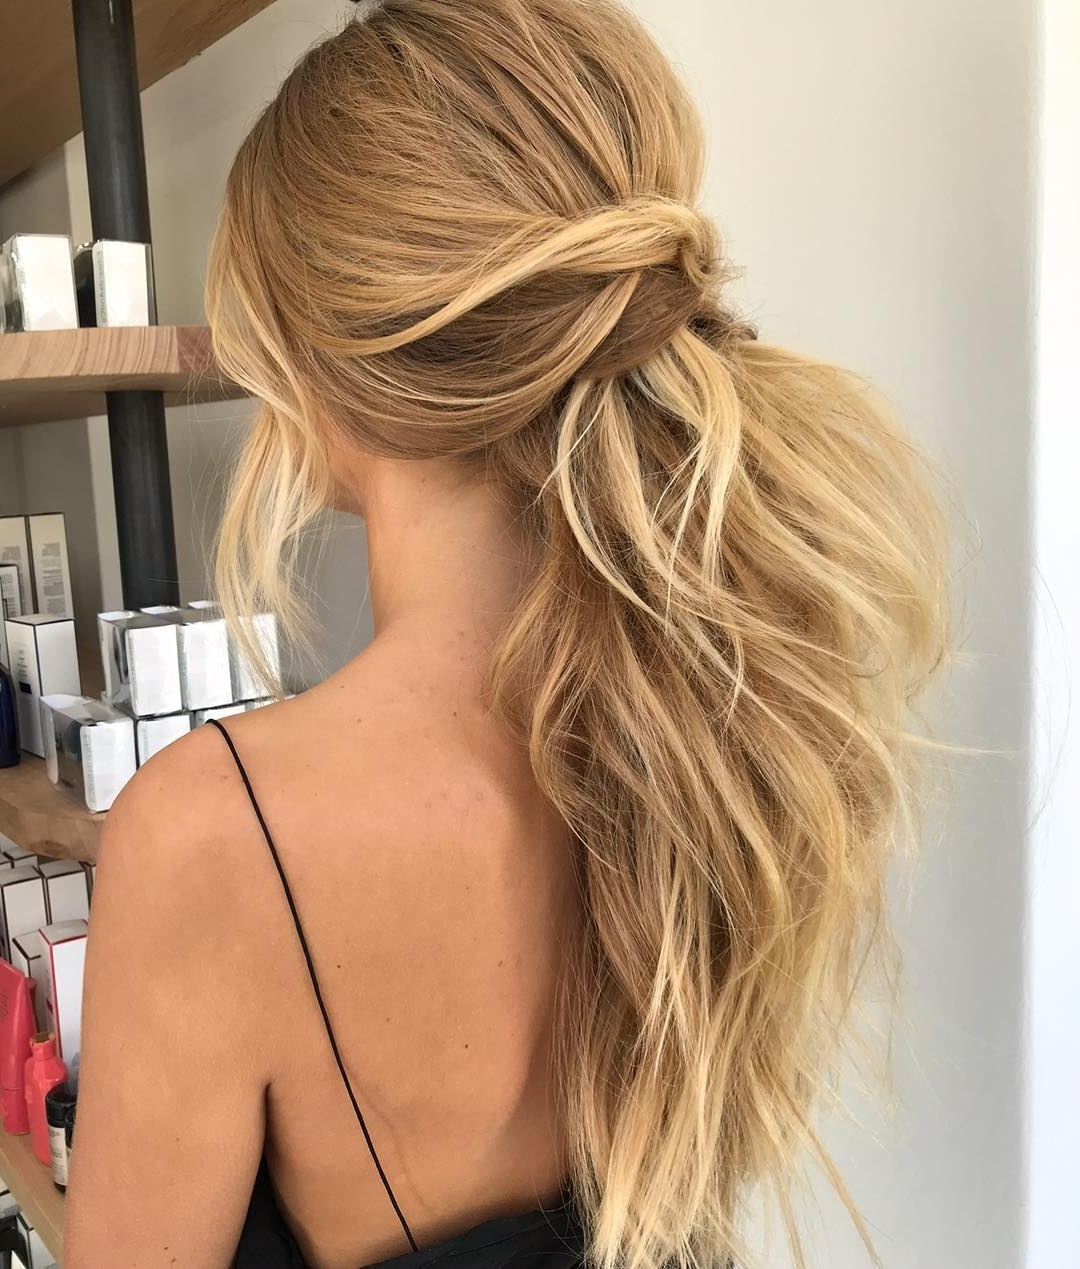 2018 Pony Hairstyles With Textured Braid Intended For Beautiful Textured Ponytail Hairstyle Ideas,ponytail Hairstyles (View 5 of 20)